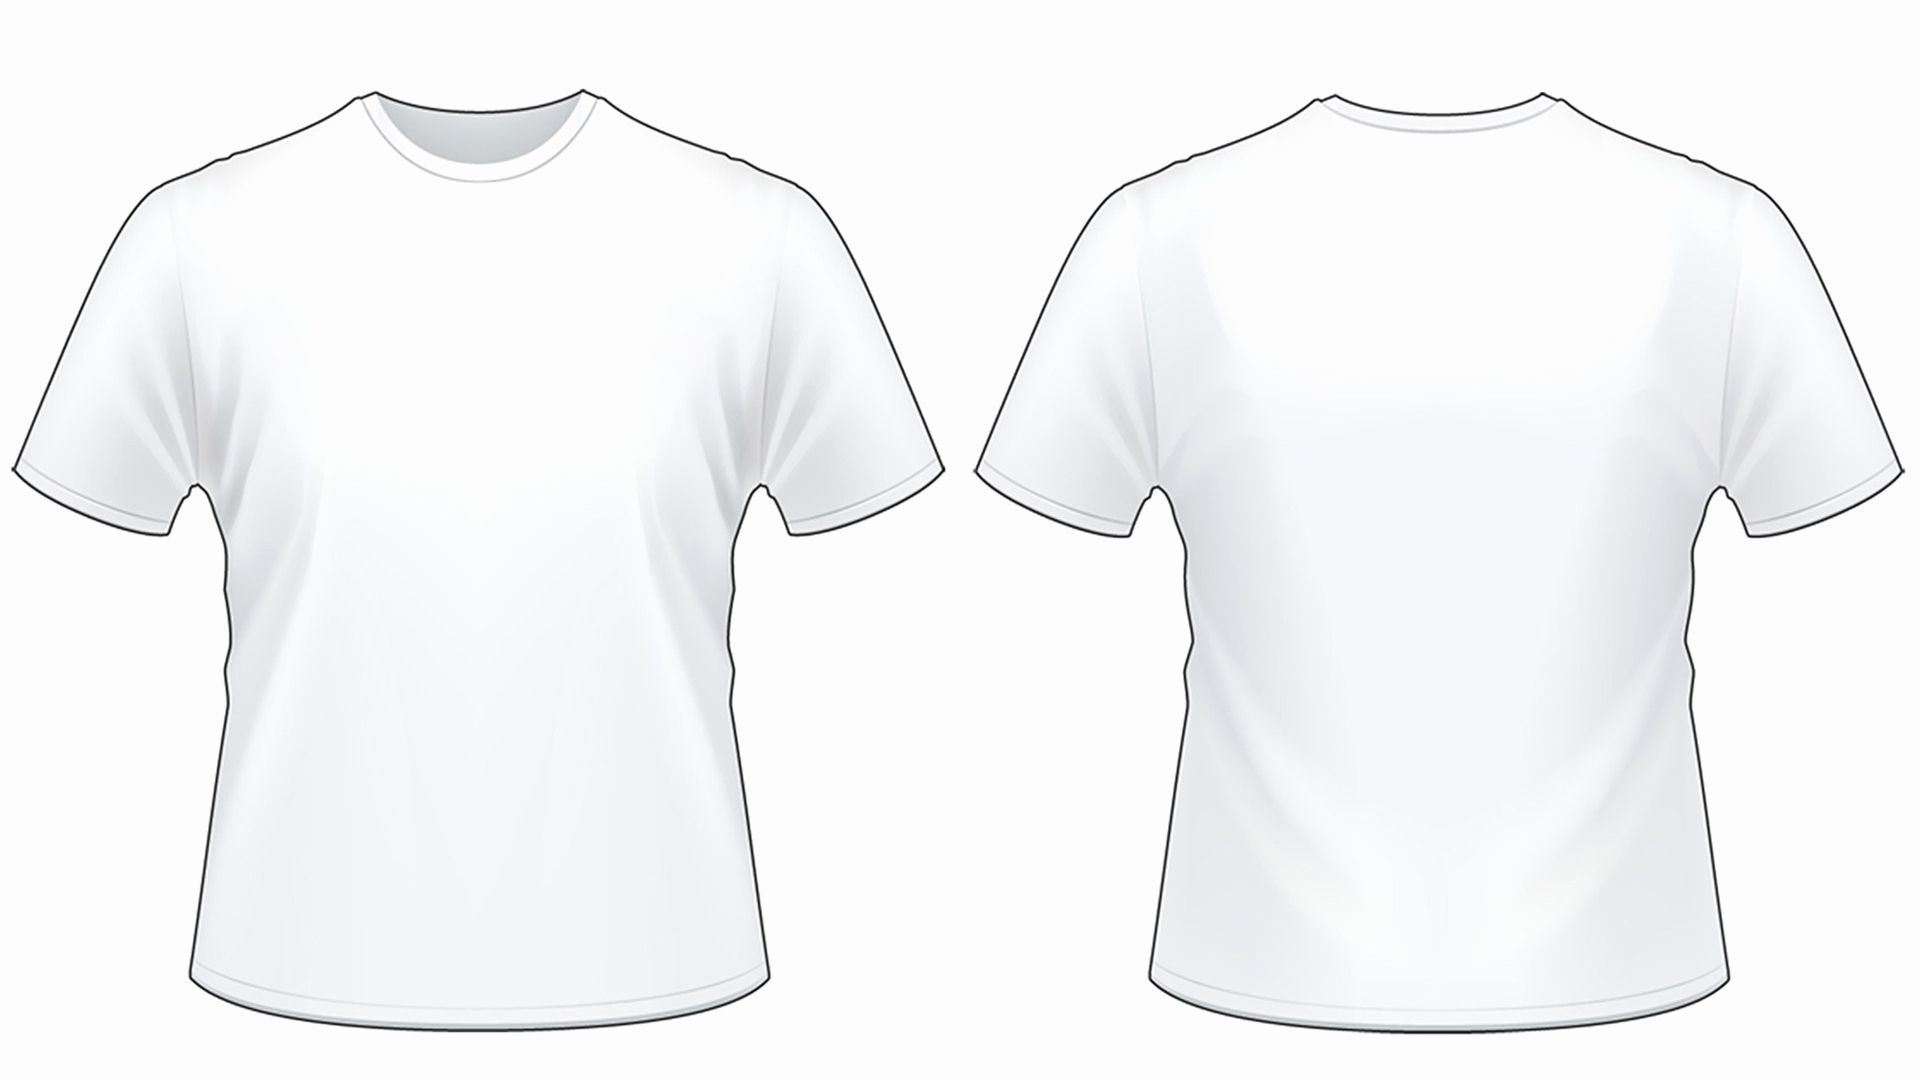 Download T Shirt Template Photoshop Elegant Blank Tshirt Template Worksheet In Png Hd Wallpapers Shirt Template Blank T Shirts T Shirt Png